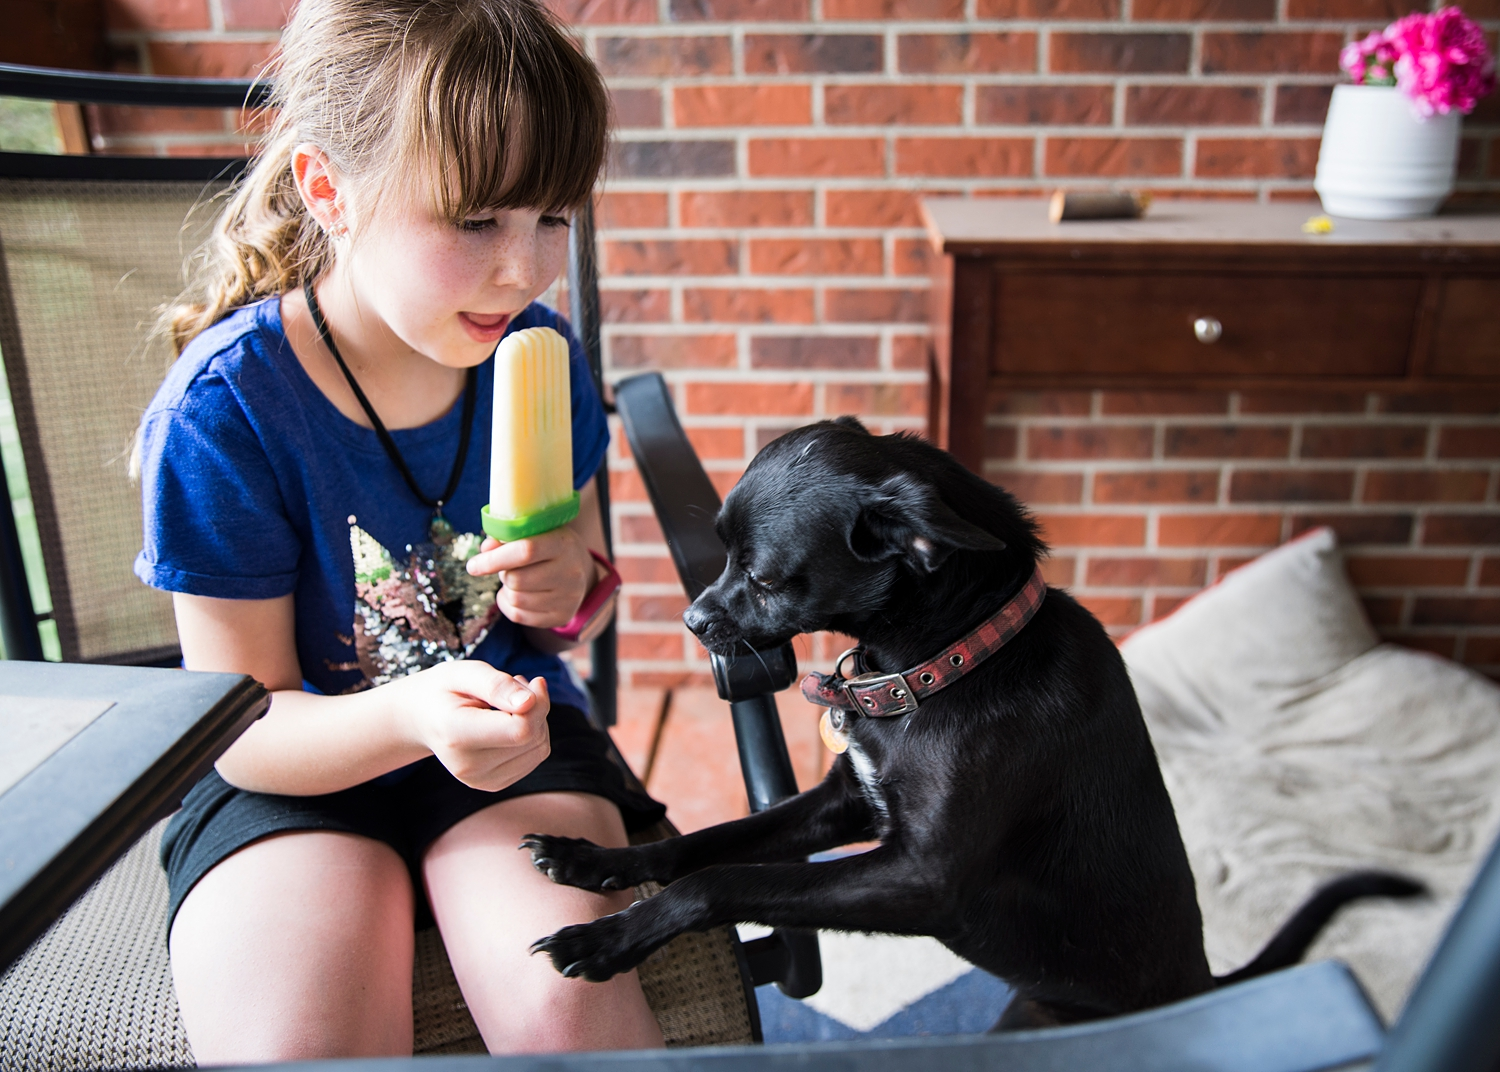 Keeping the dogs away from her homemade creamsicles is part of the job.  Why homeschooling is good is something we try to show in our Week in the Life of an Unschooler series :)